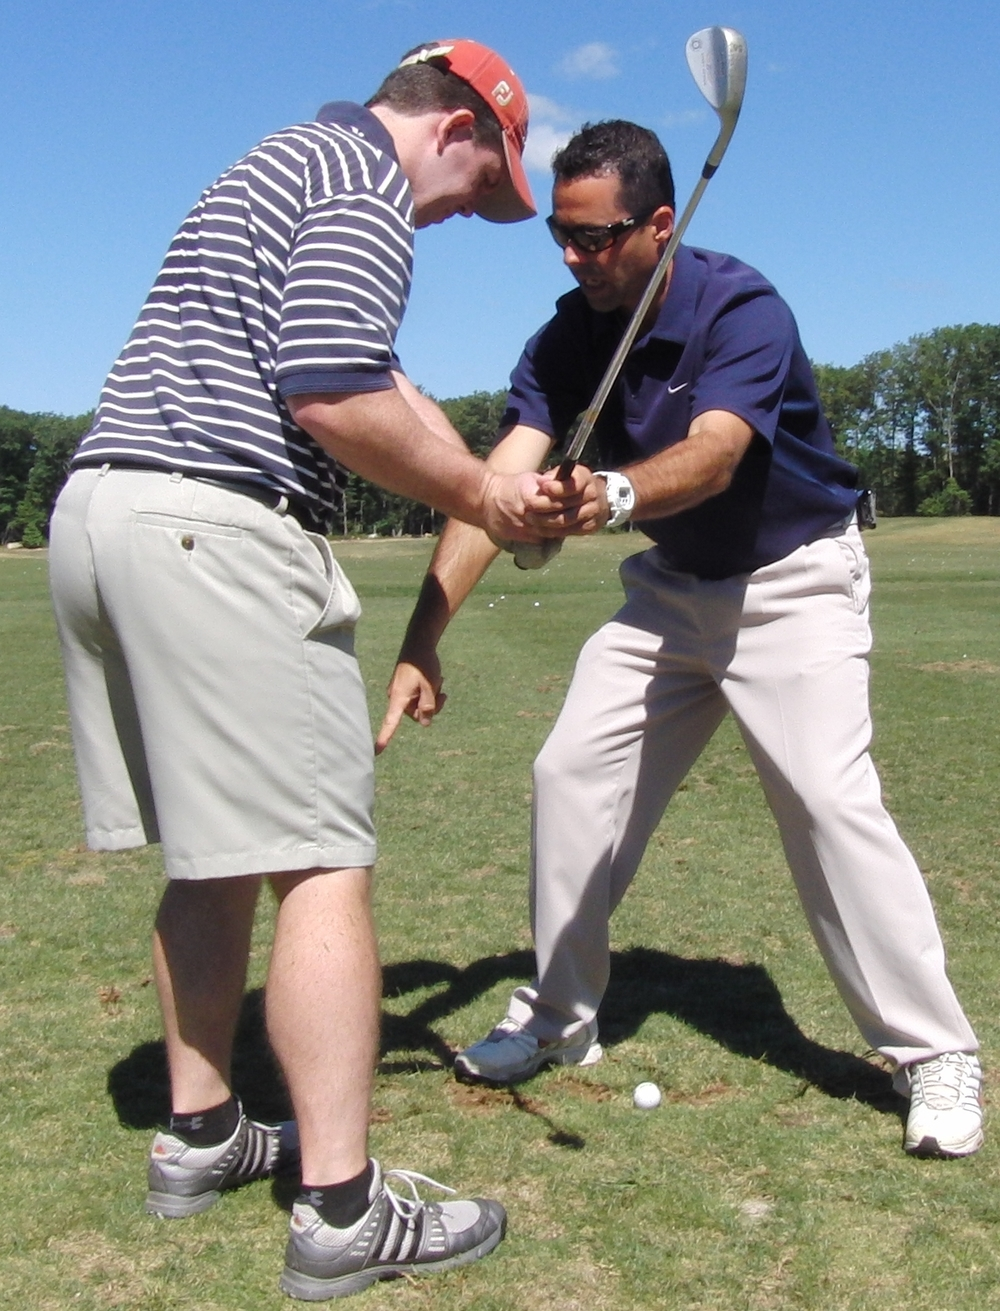 Private golf lessons provide one-on-one attention to improve specific skill sets but private golf lessons don't improve how and what a player does during practice.